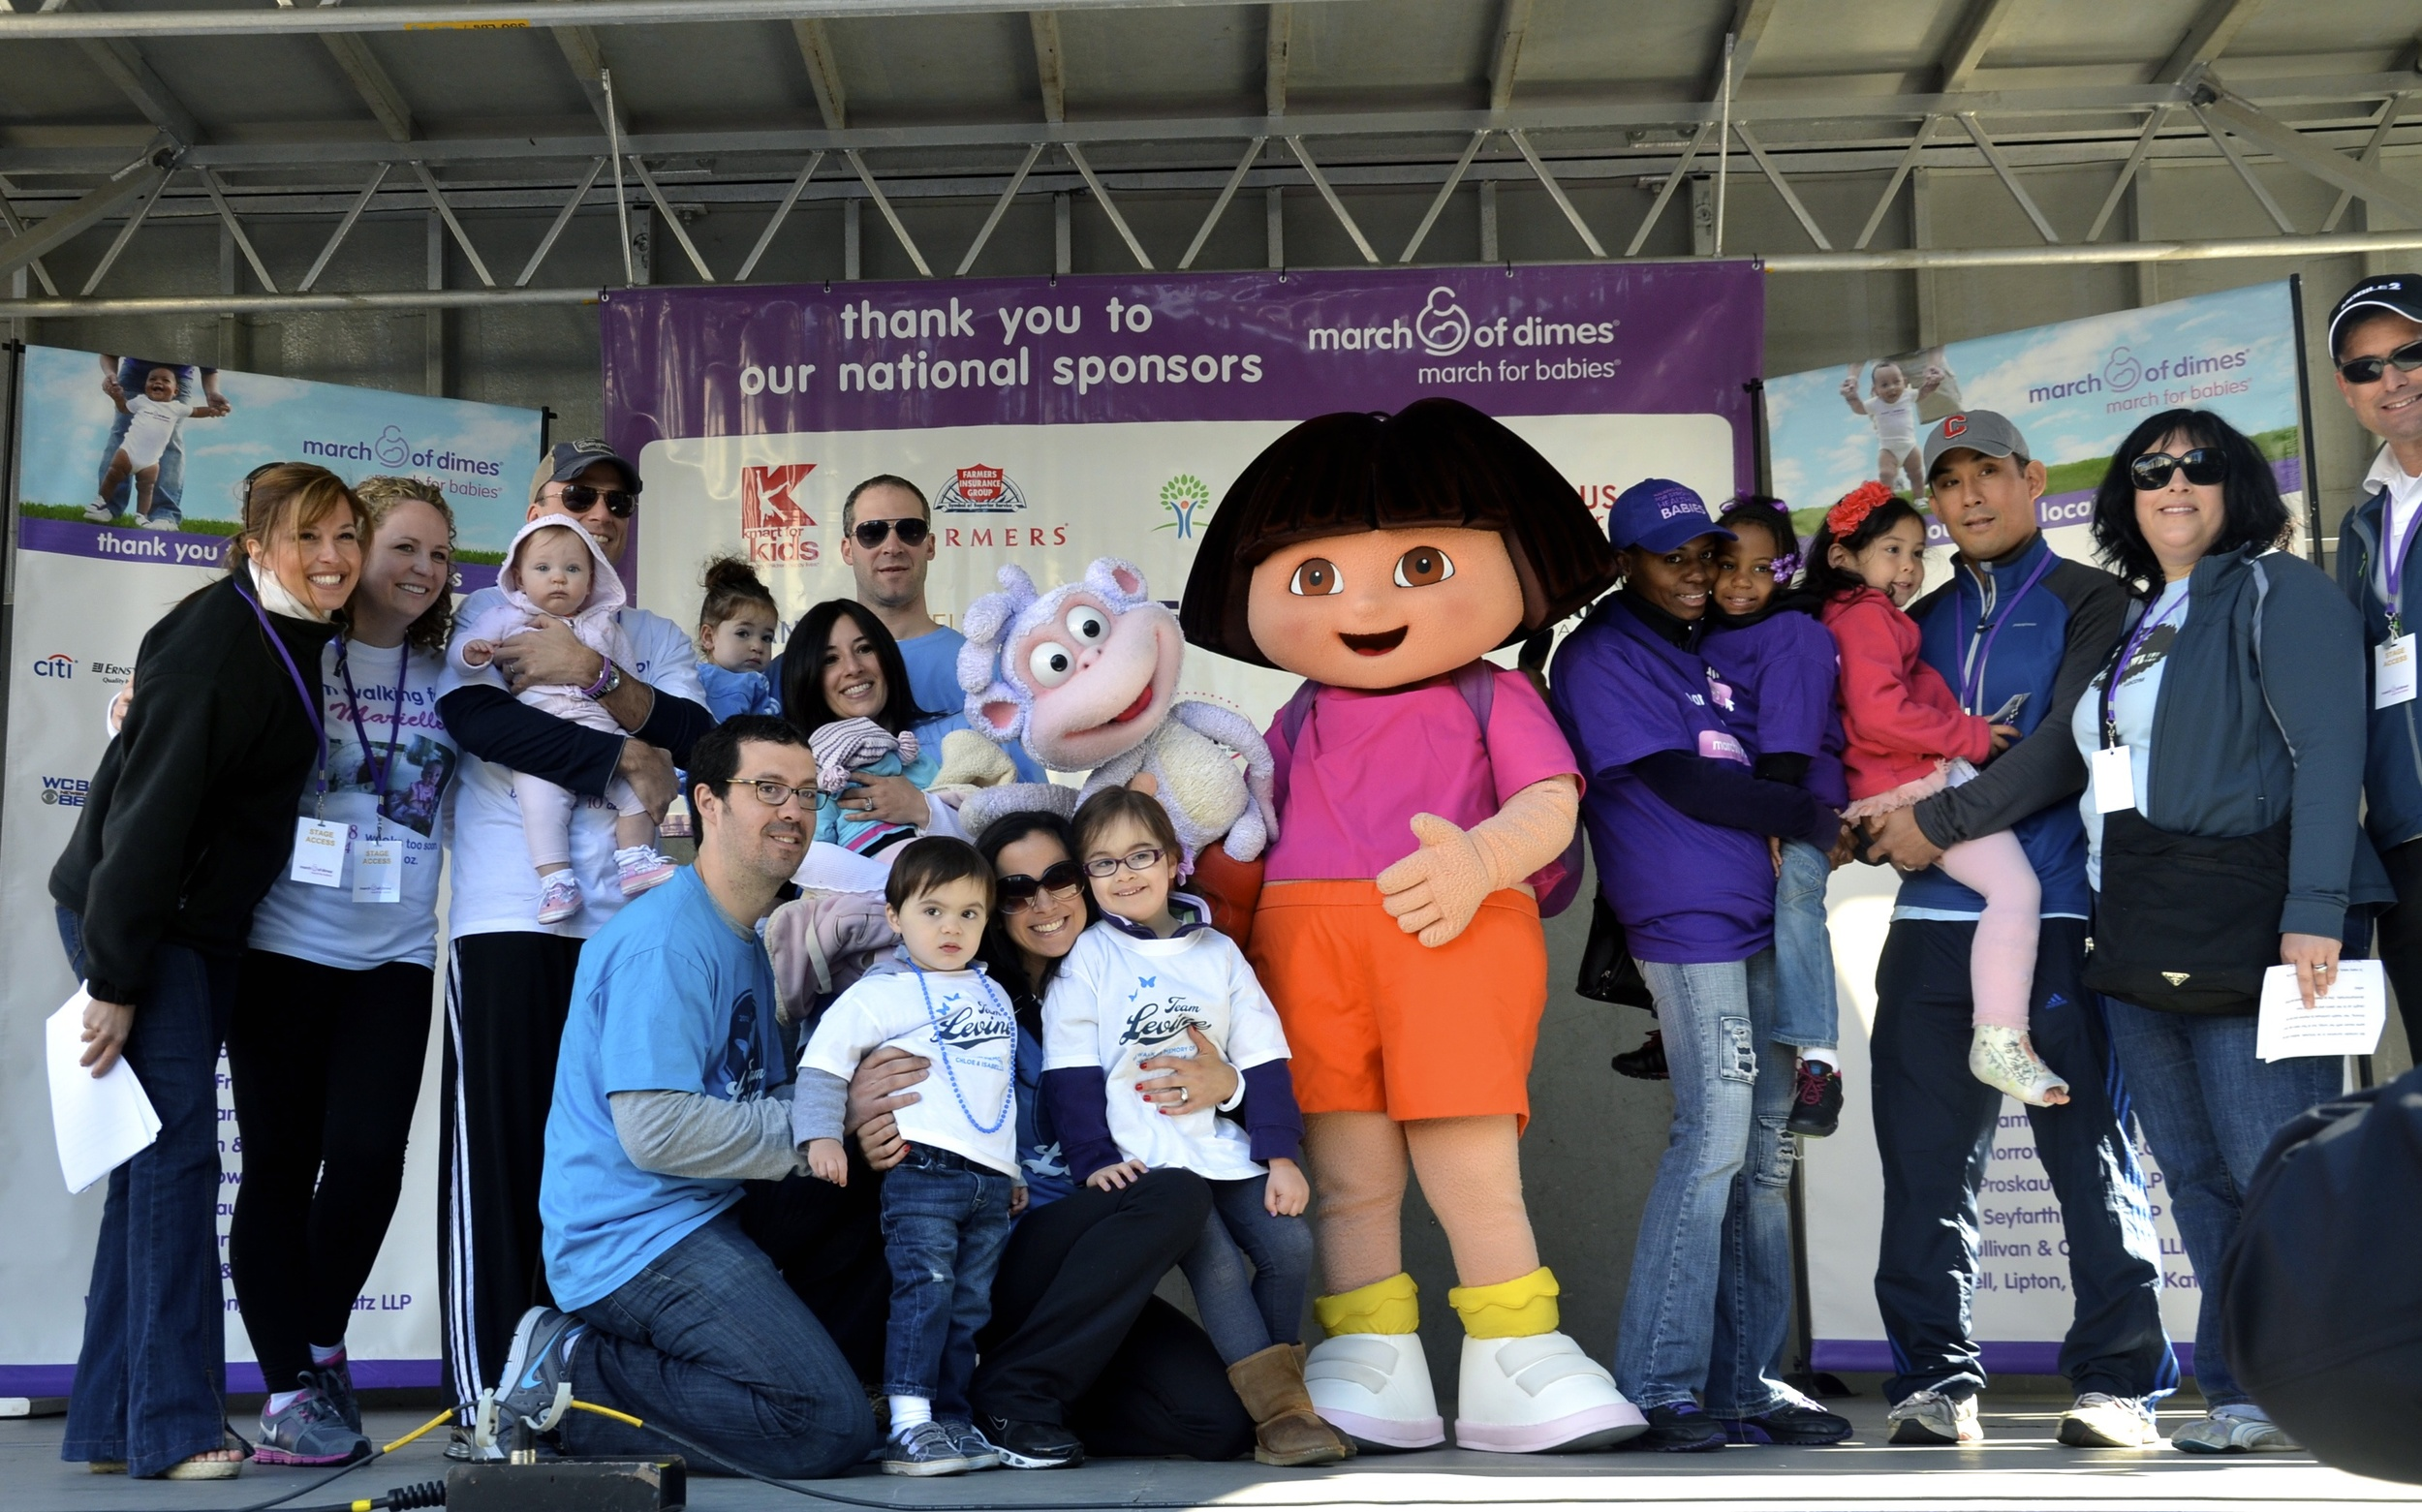 levine-family-on-stage-at-the-2012-march-for-babies-walk_8539153169_o.jpg